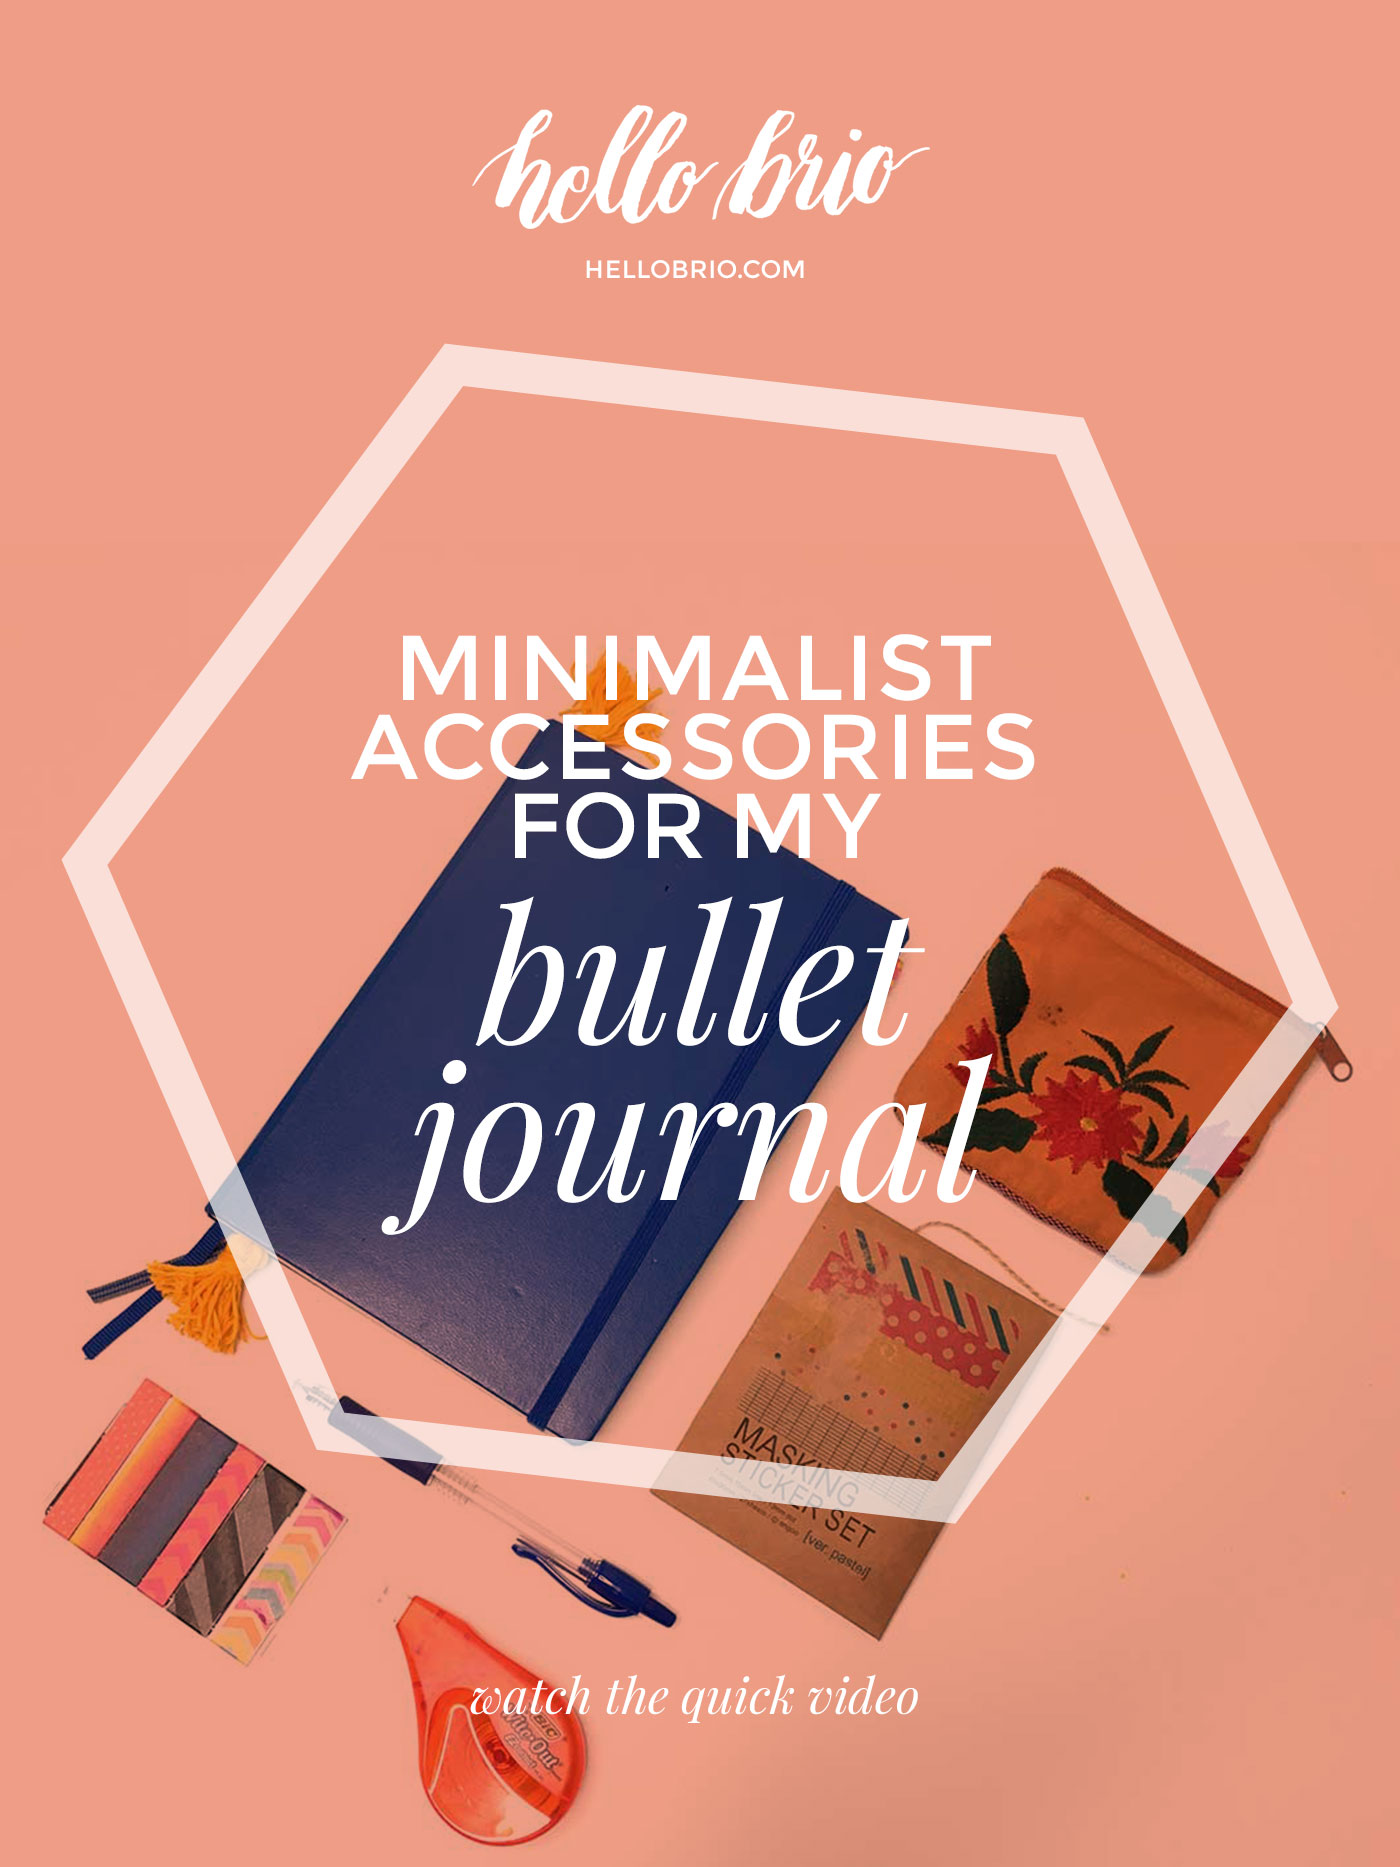 Minimal travel accessories for the bullet journal